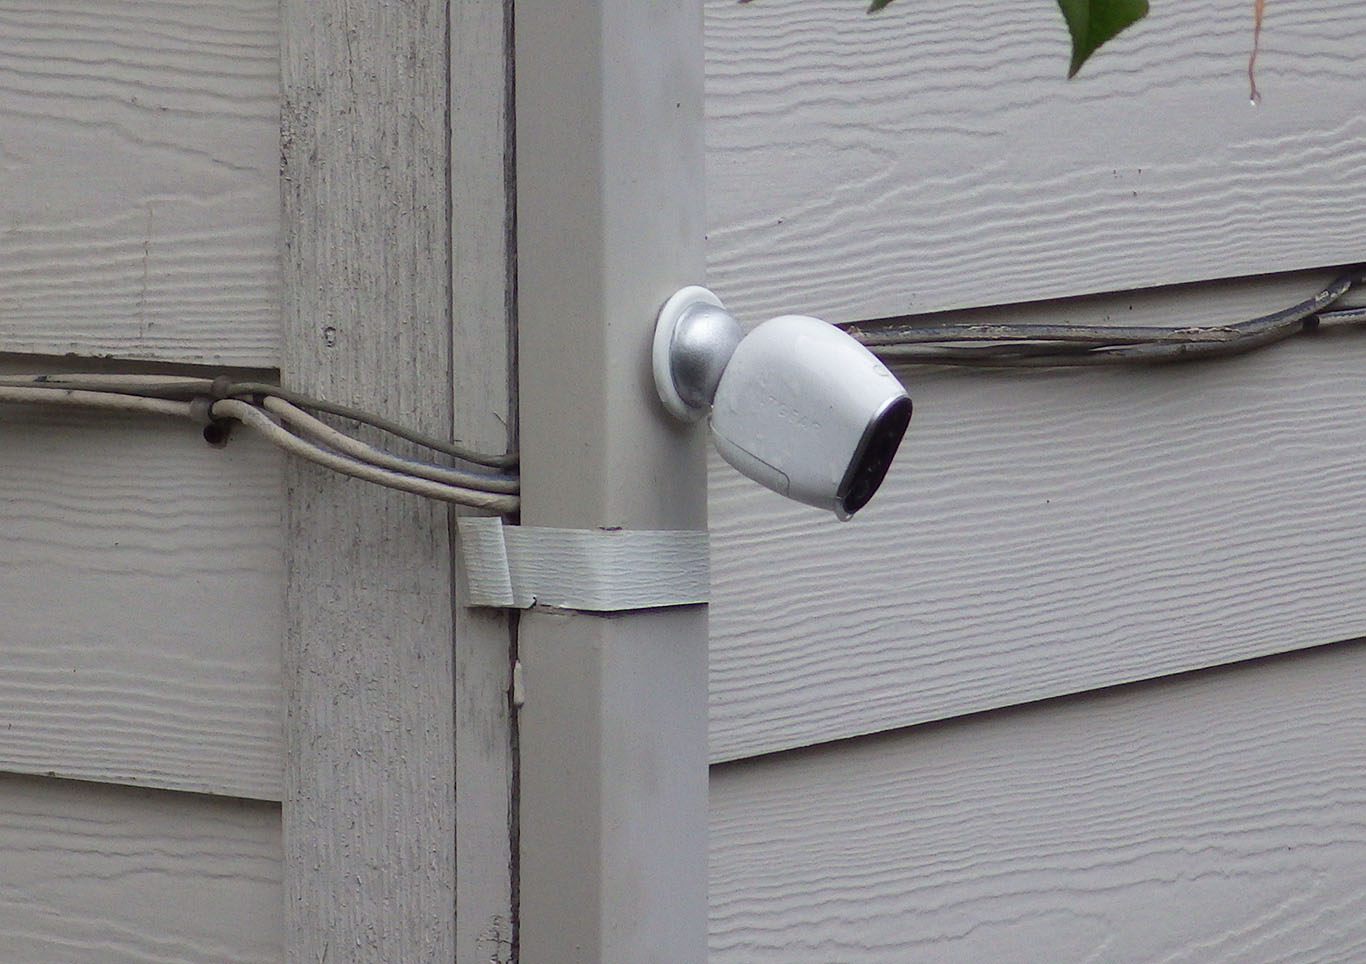 Security Home Cameras External